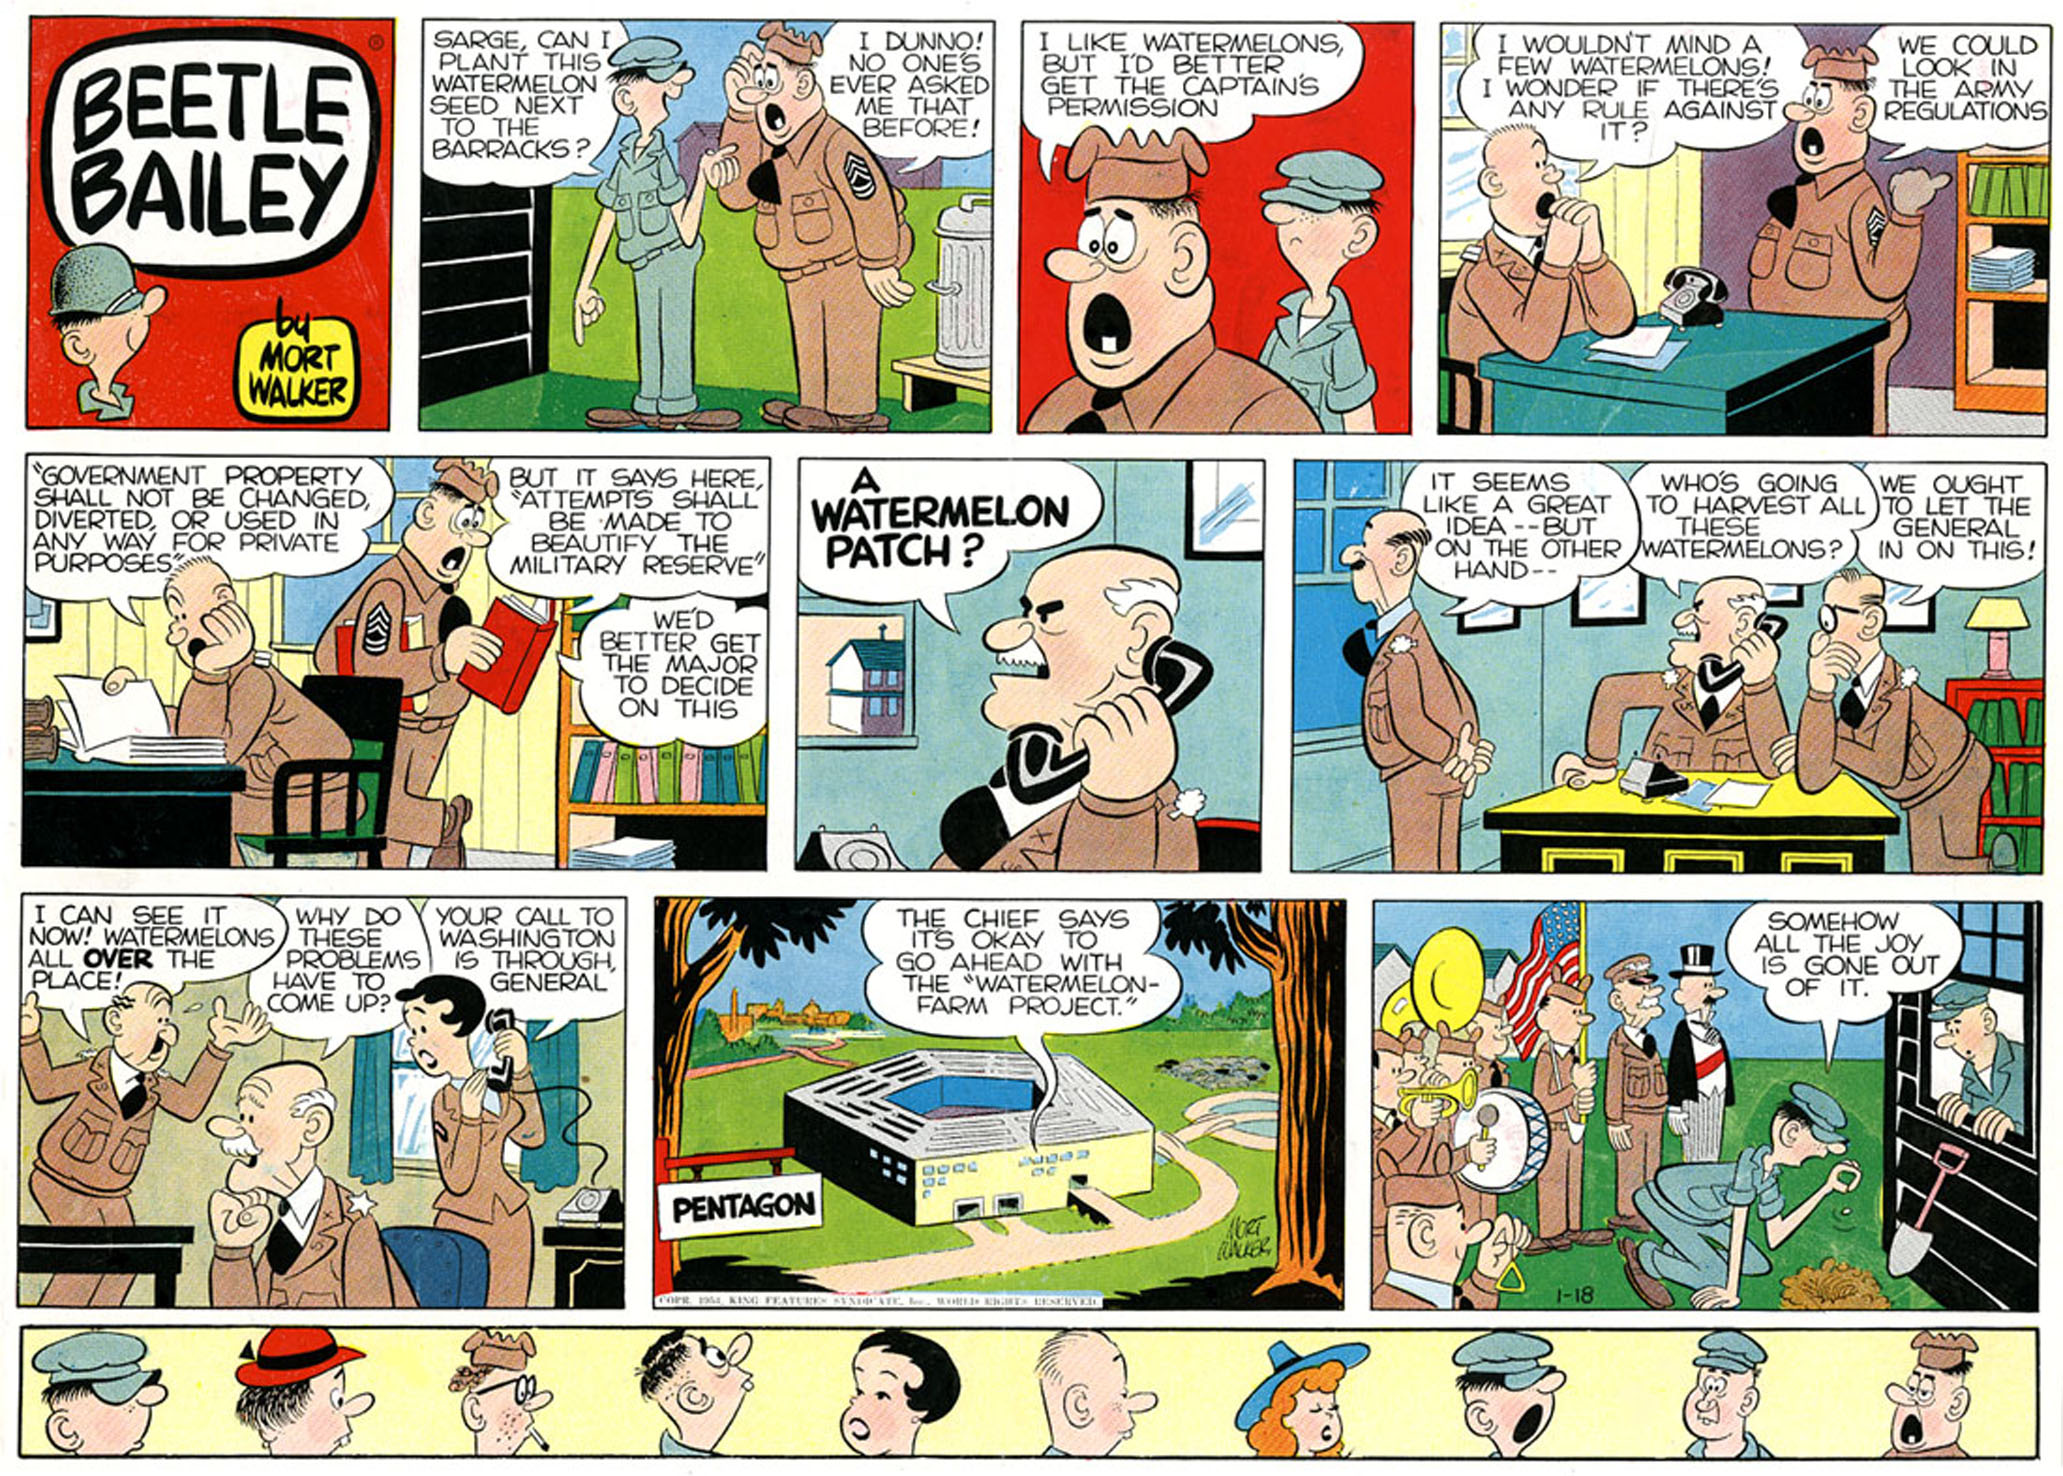 Beetle Bailey Sunday page, color proof, November 8, 1953.